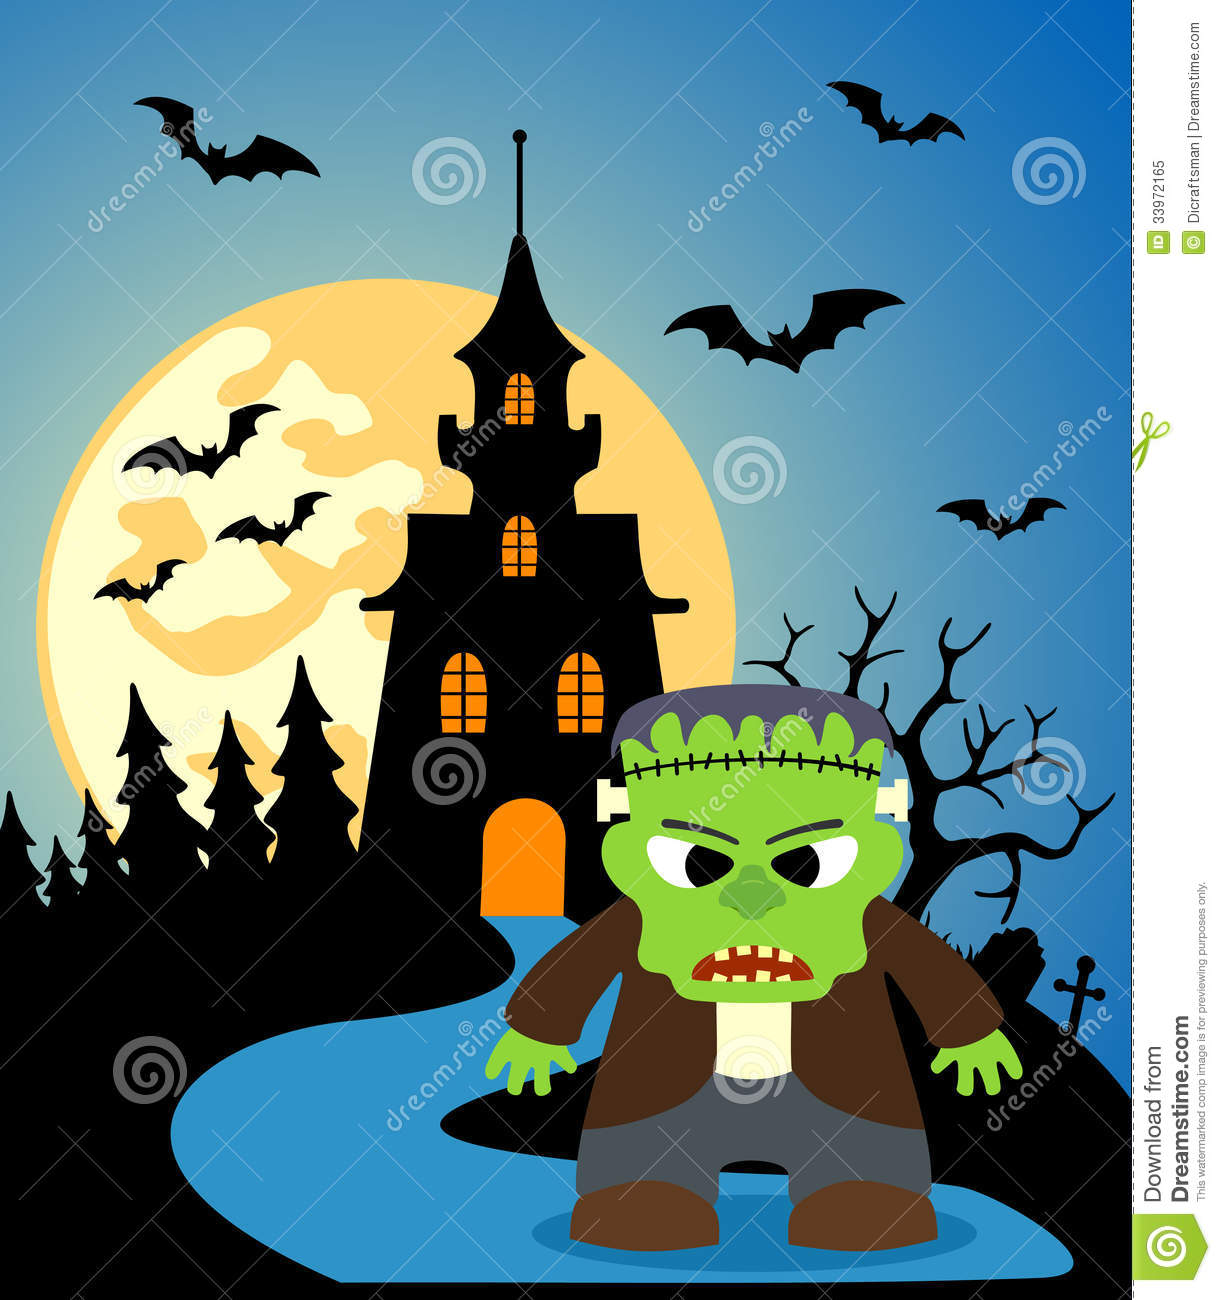 Halloween Background With Frankenstein Stock Vector ...